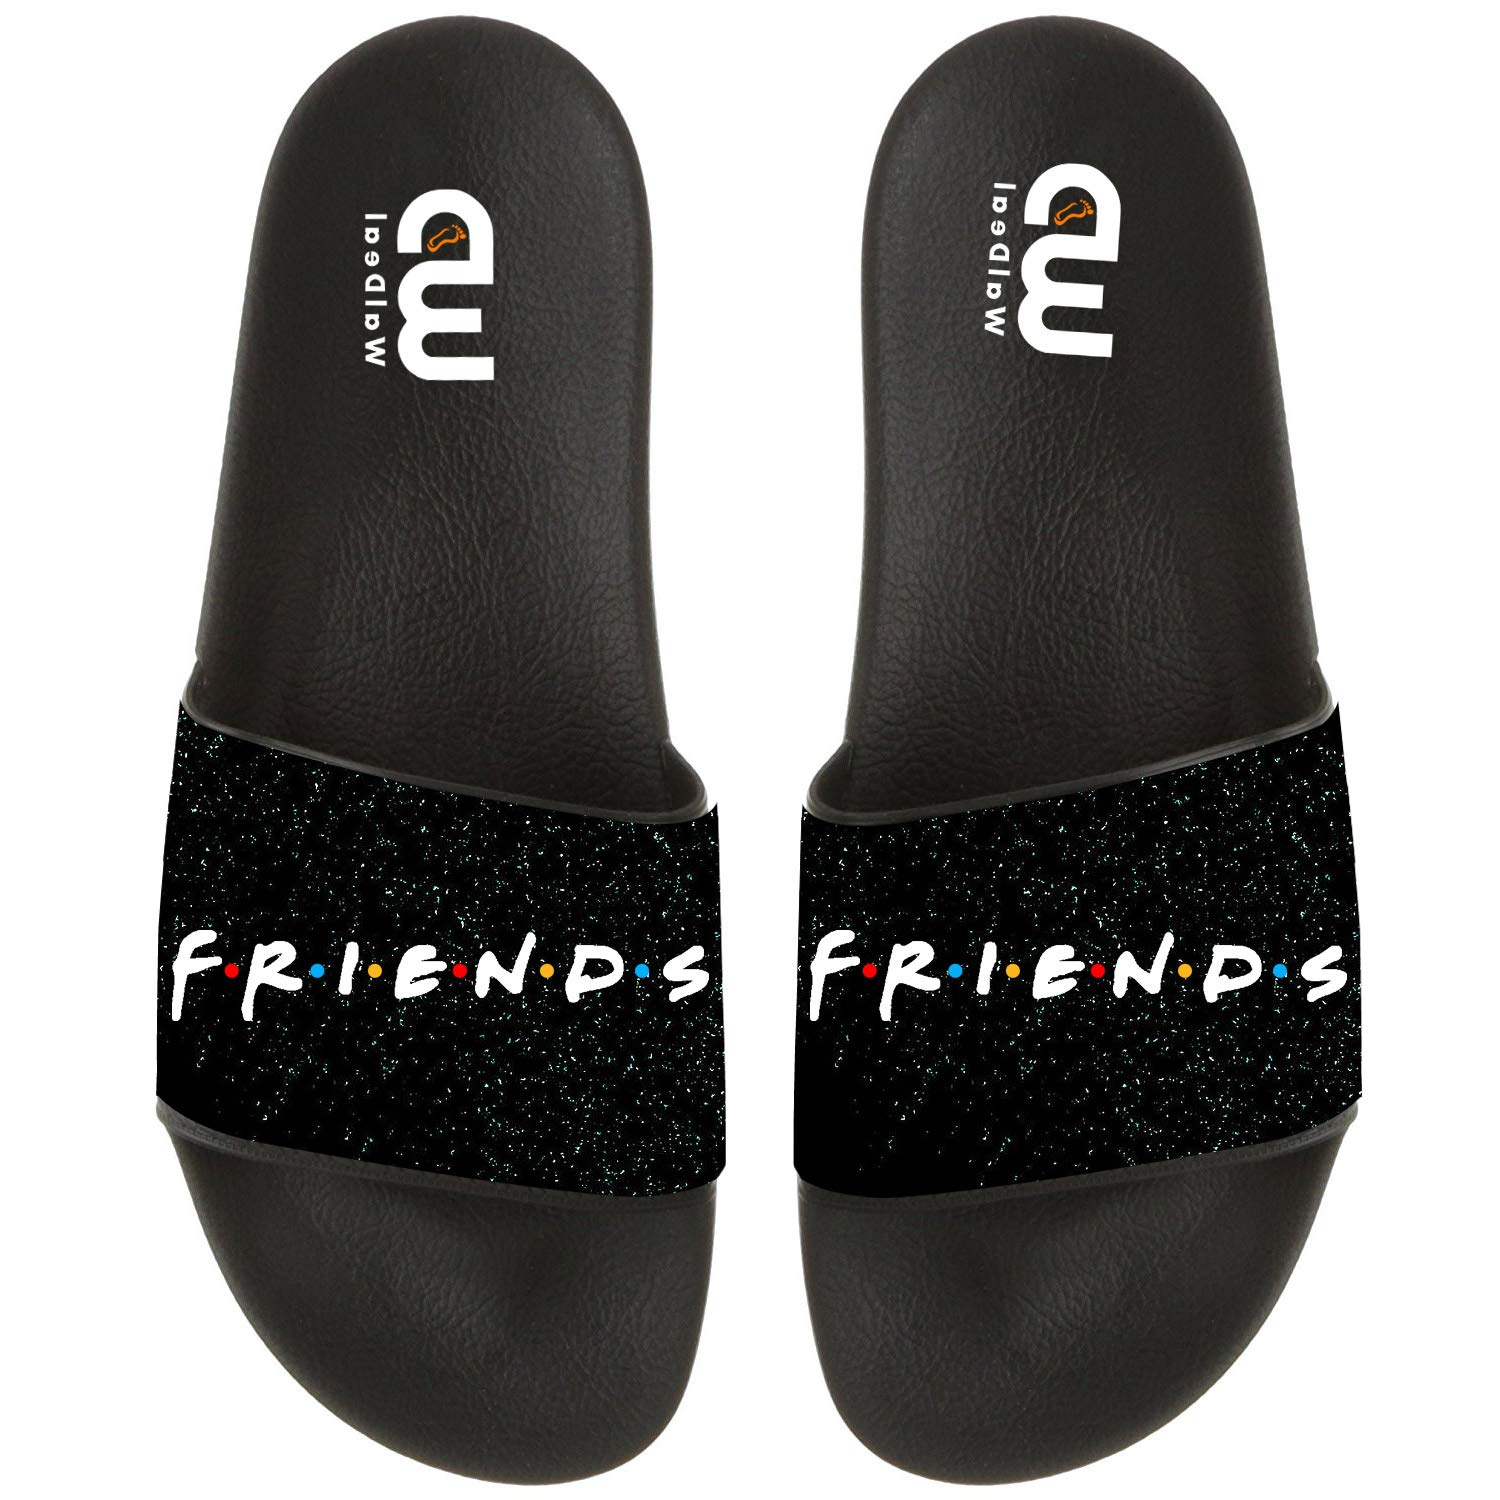 7a5cd040589ed Amazon.com: Friends Quotes Gift Summer Slides Slipper For Men Women Outdoor  Beach Indoor Home Casual Sandal Shoes: Clothing